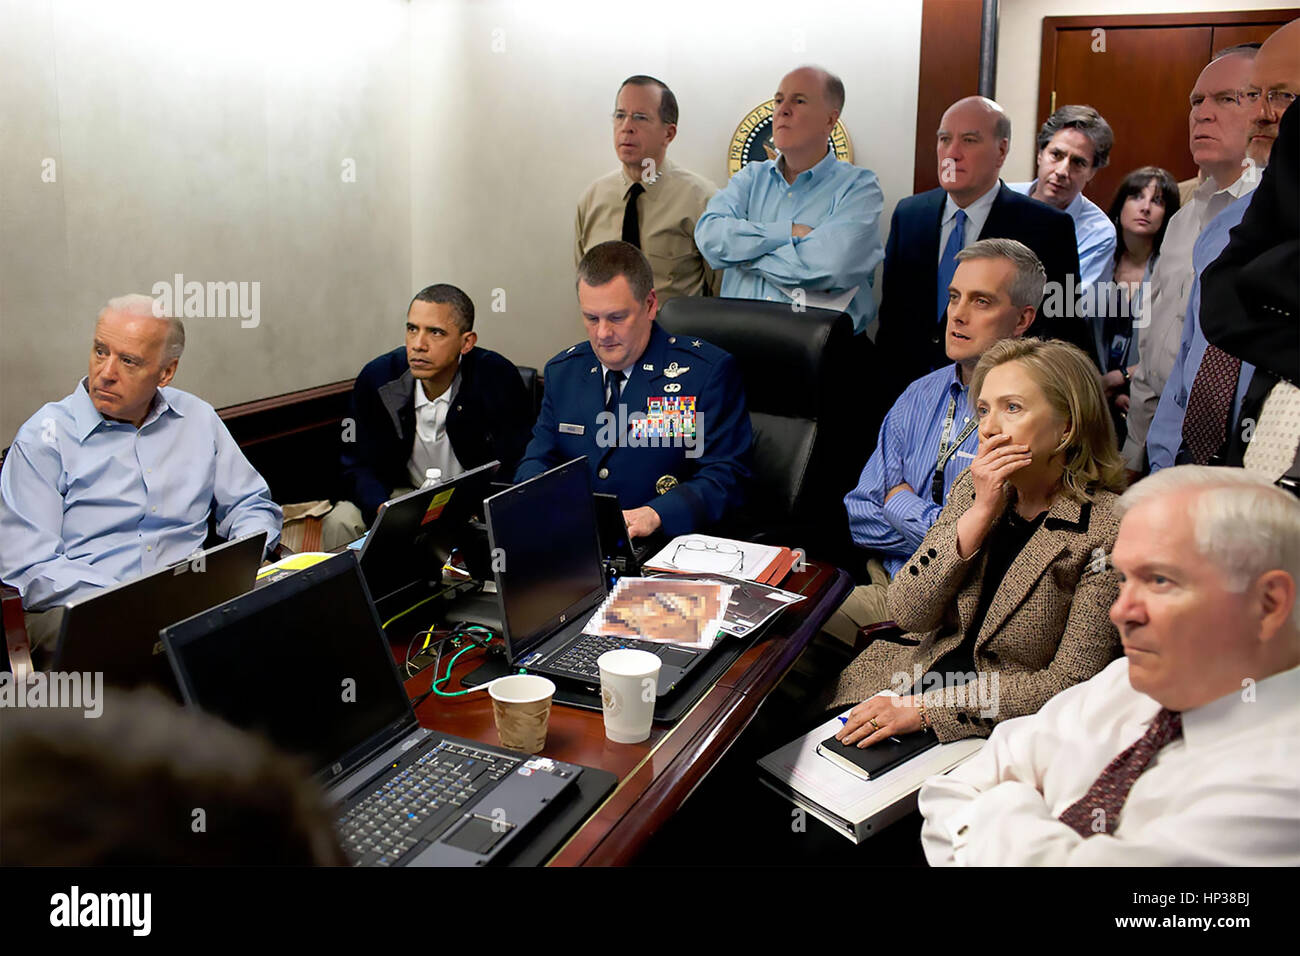 THE SITUATION ROOM  White House photographer Pete Souza's photo of the moment President Obama and his team watched - Stock Image